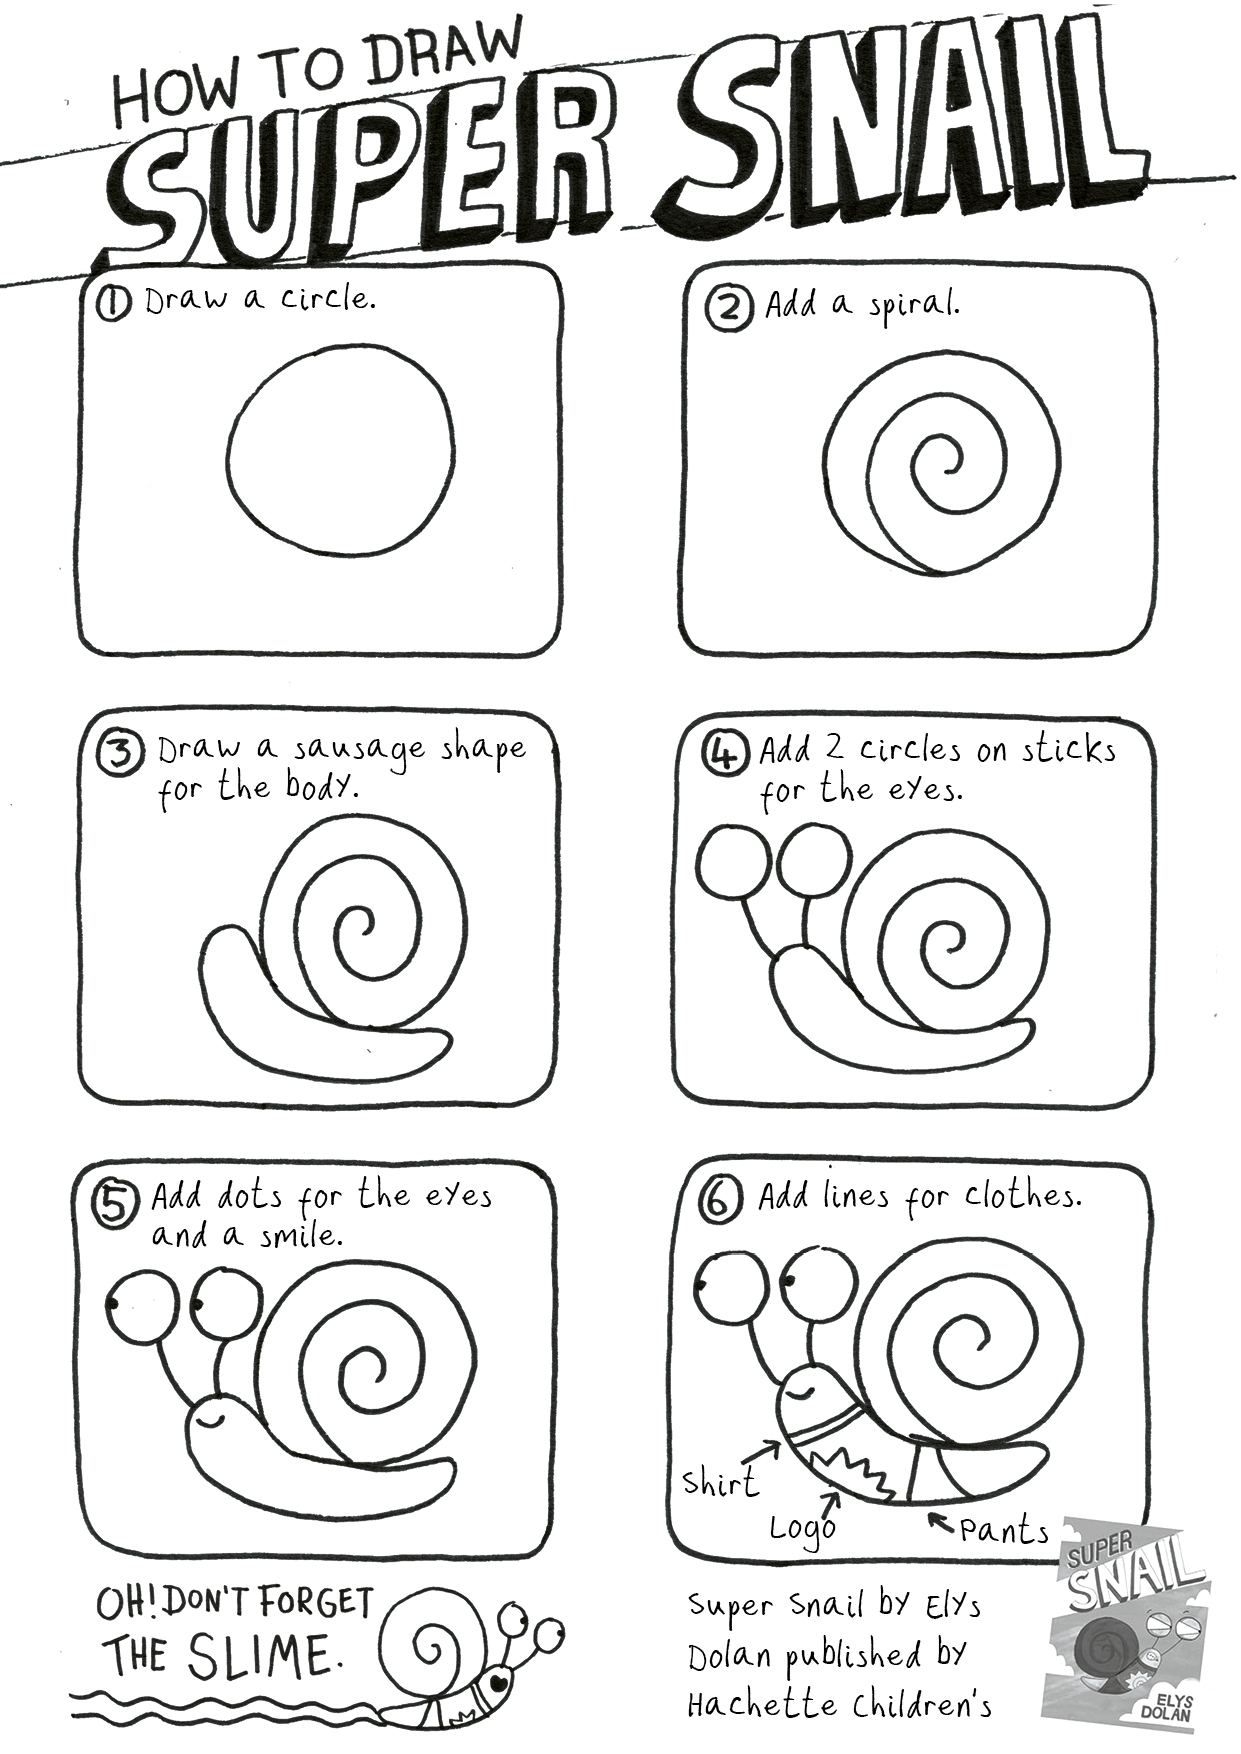 How to Draw Super Snail.jpg